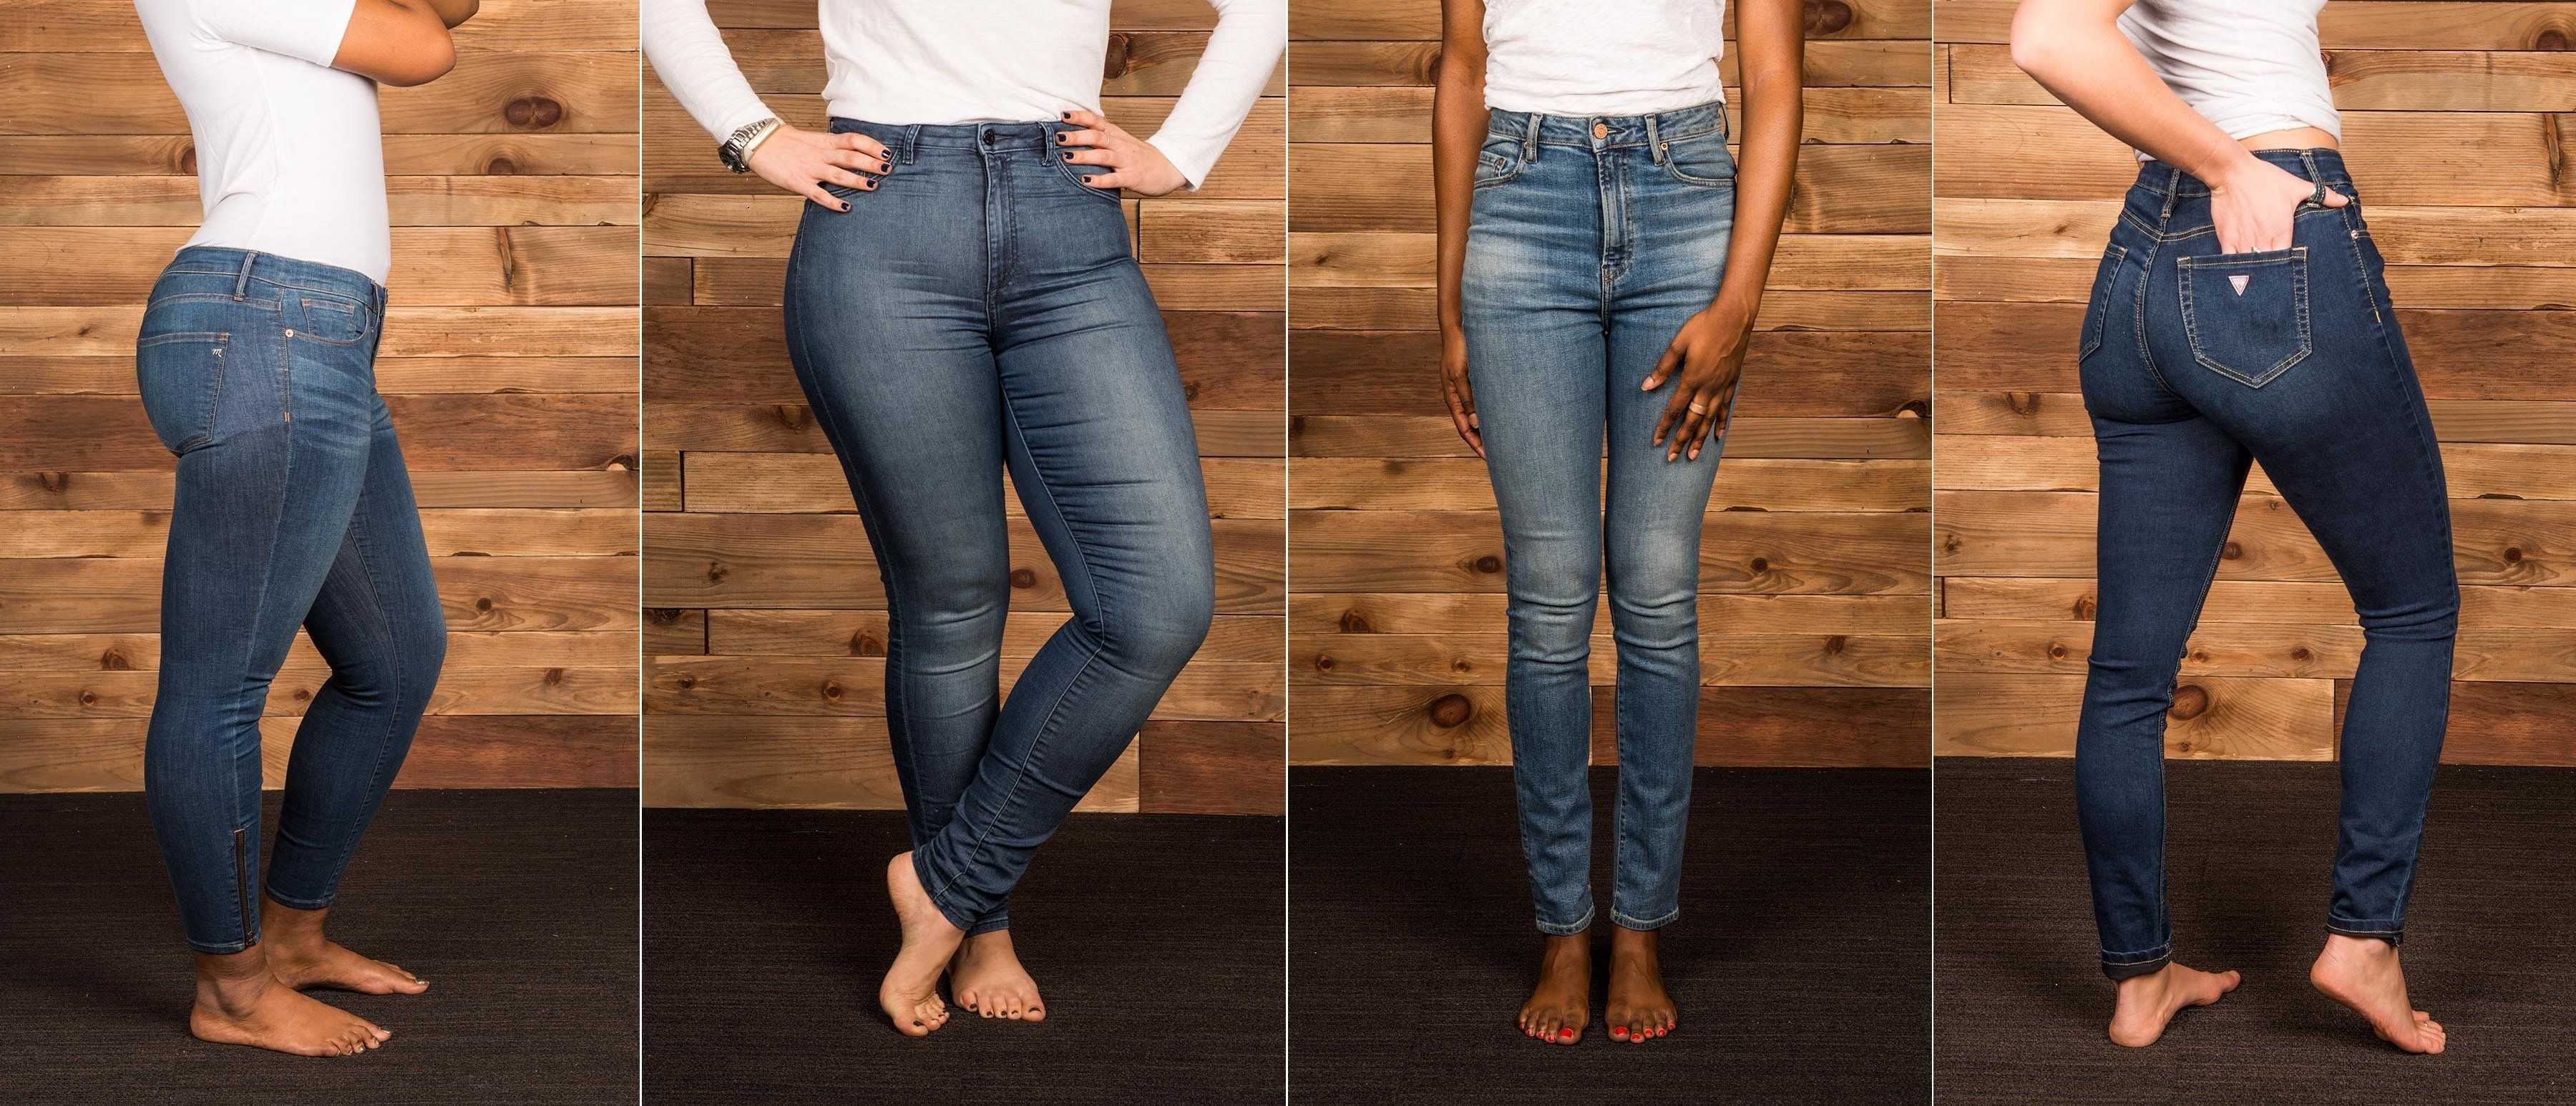 11 Women Get Refreshingly Real About Finding Jeans That Fit Their ...